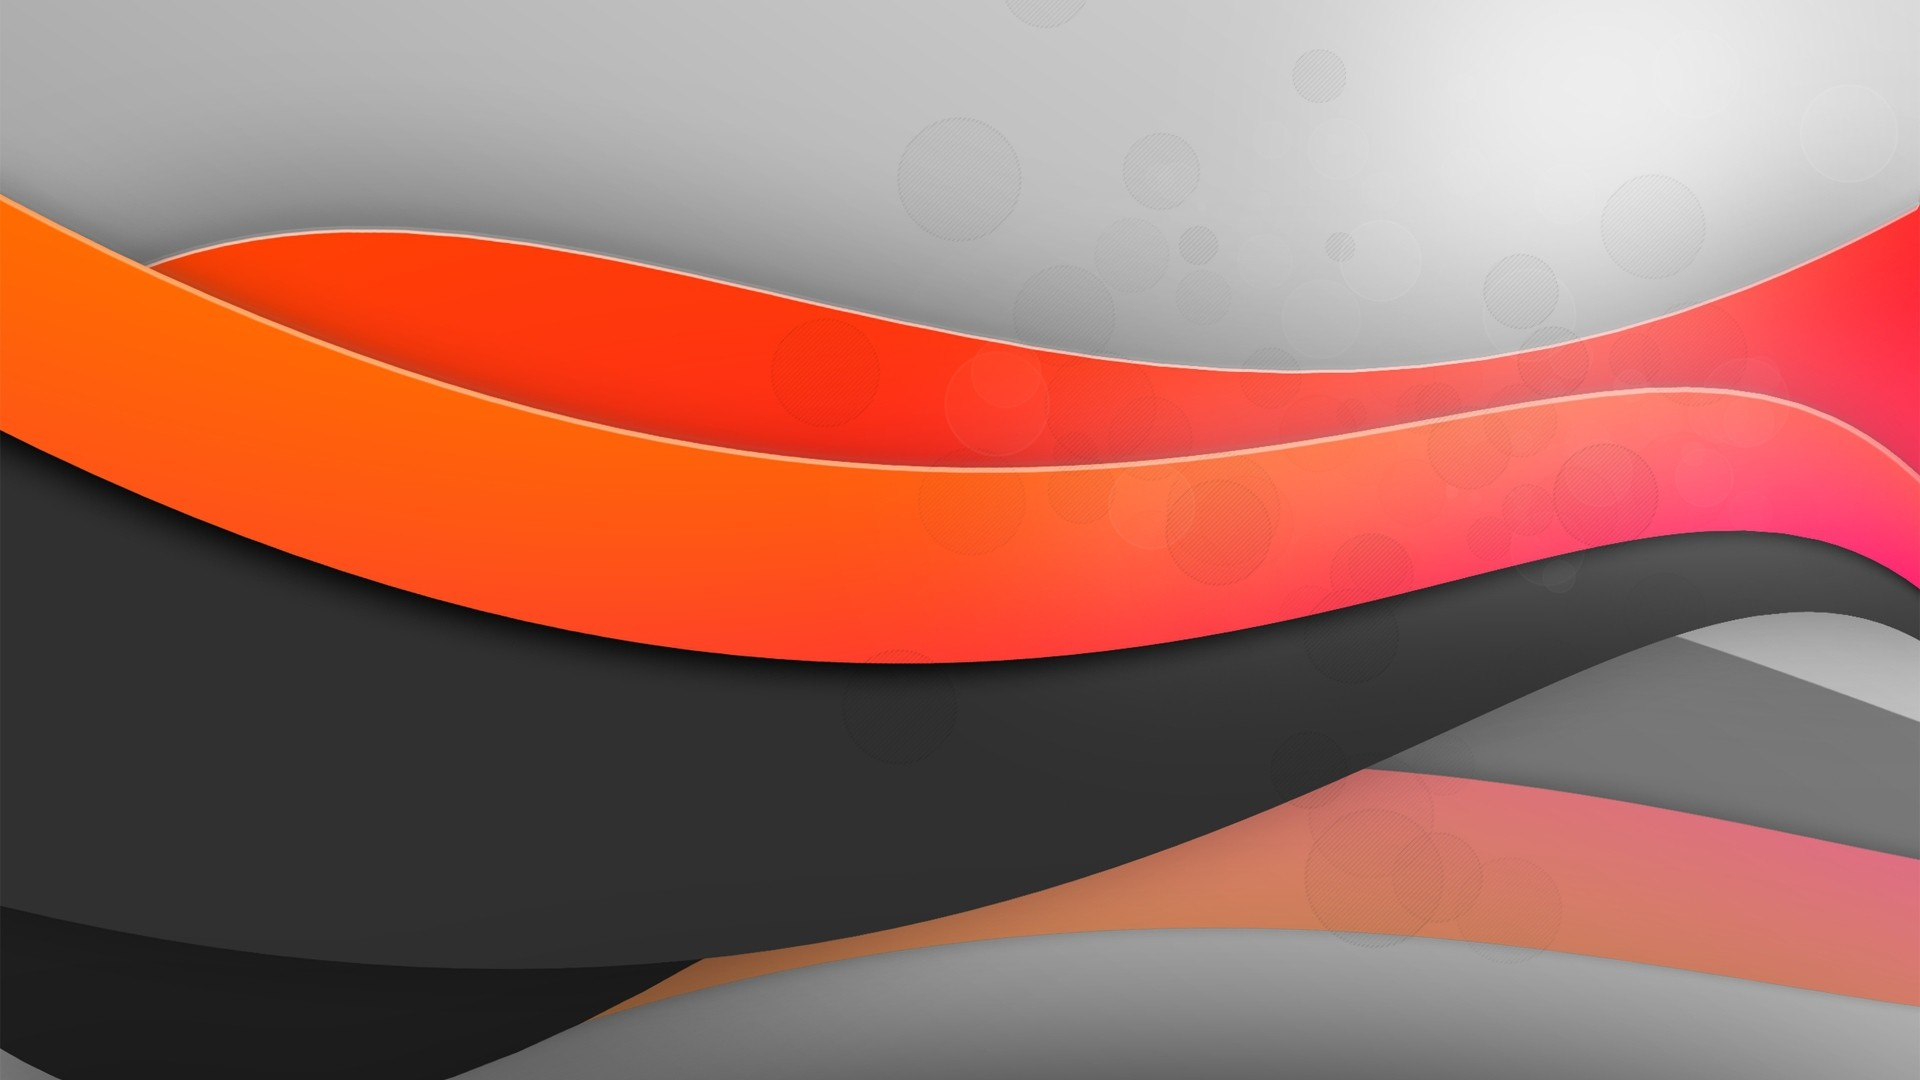 Res: 1920x1080, Download now full hd wallpaper wave orange black grey background ...